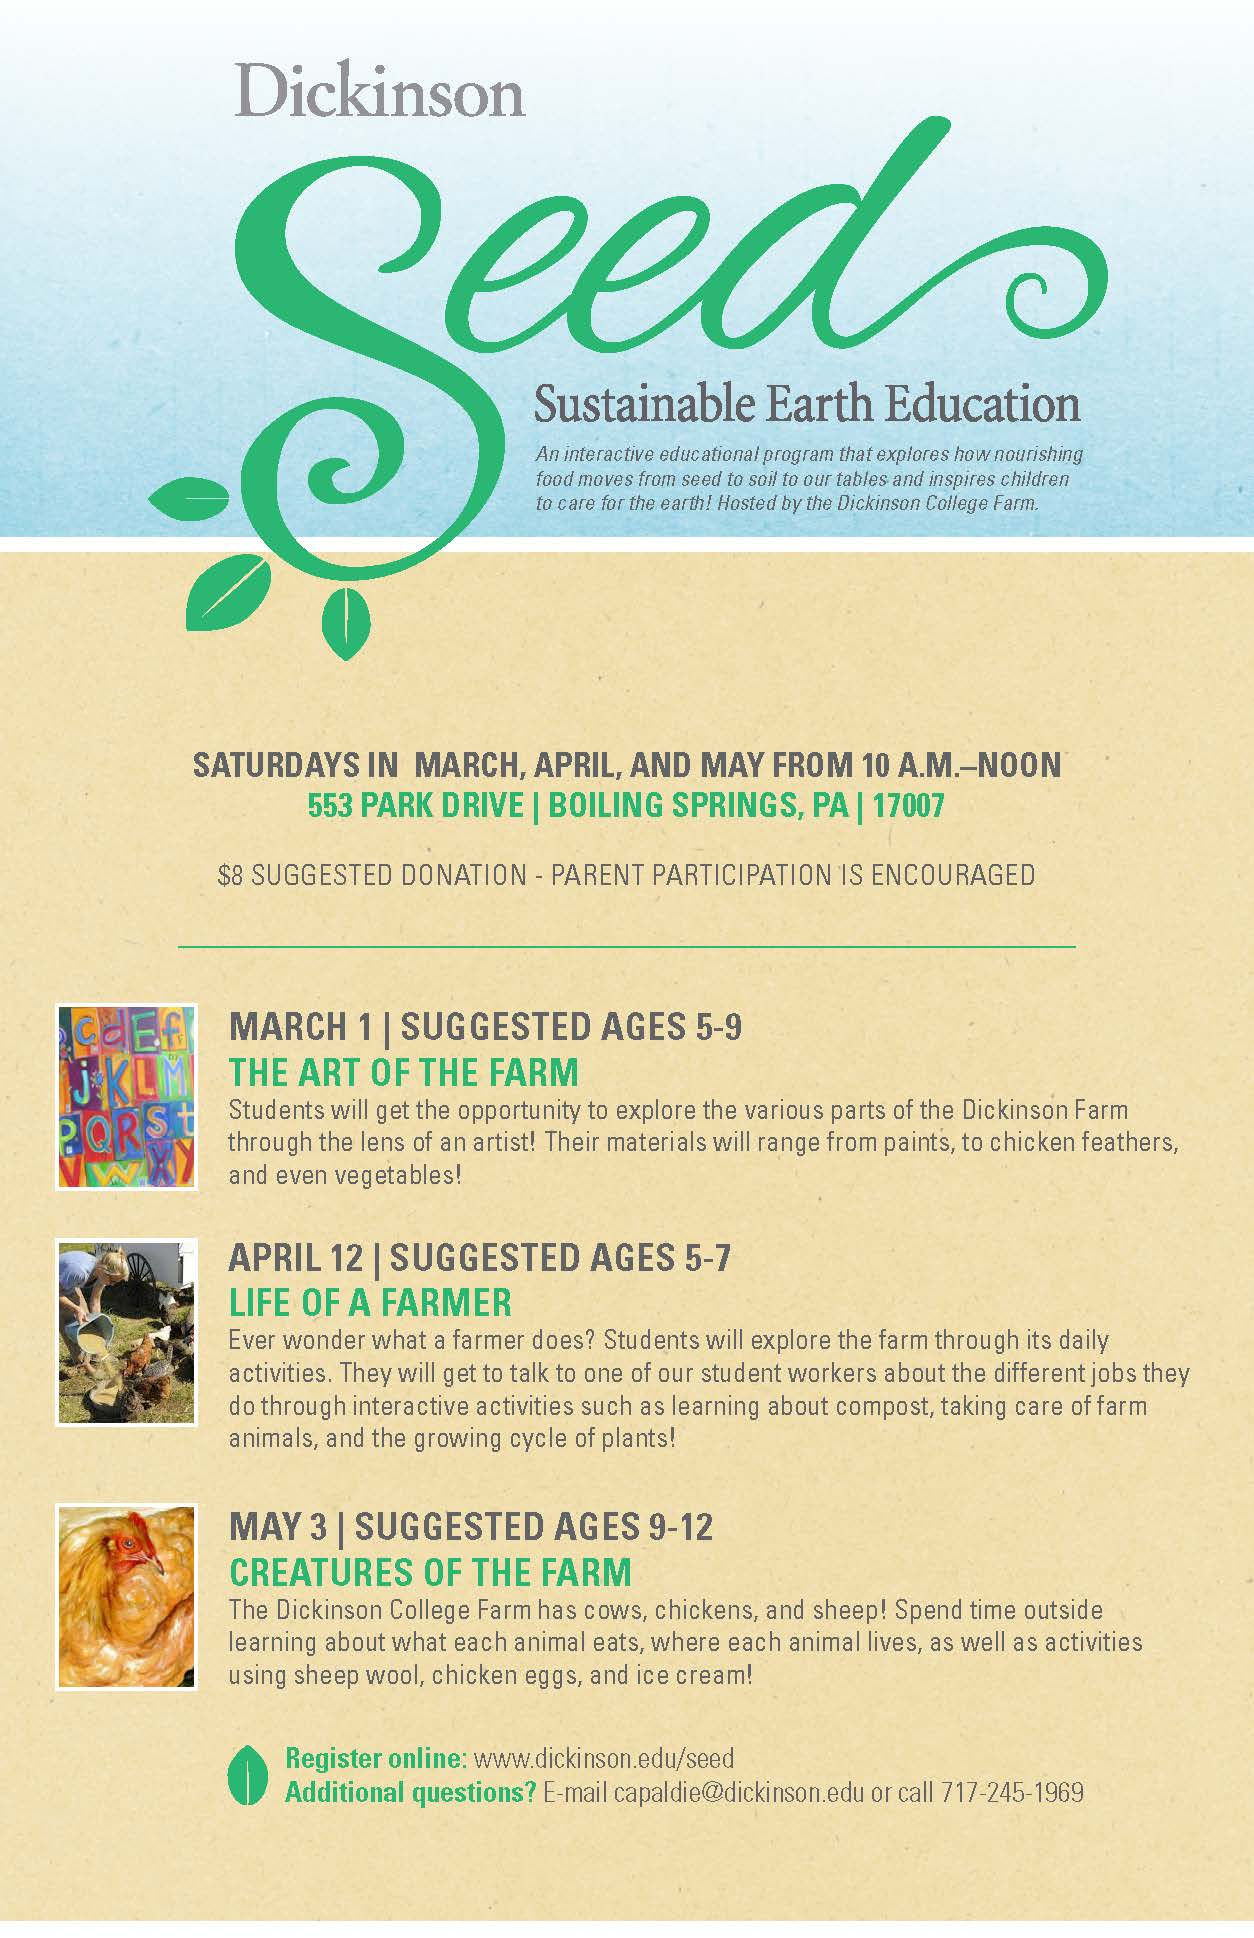 SEED Spring 2014 Poster